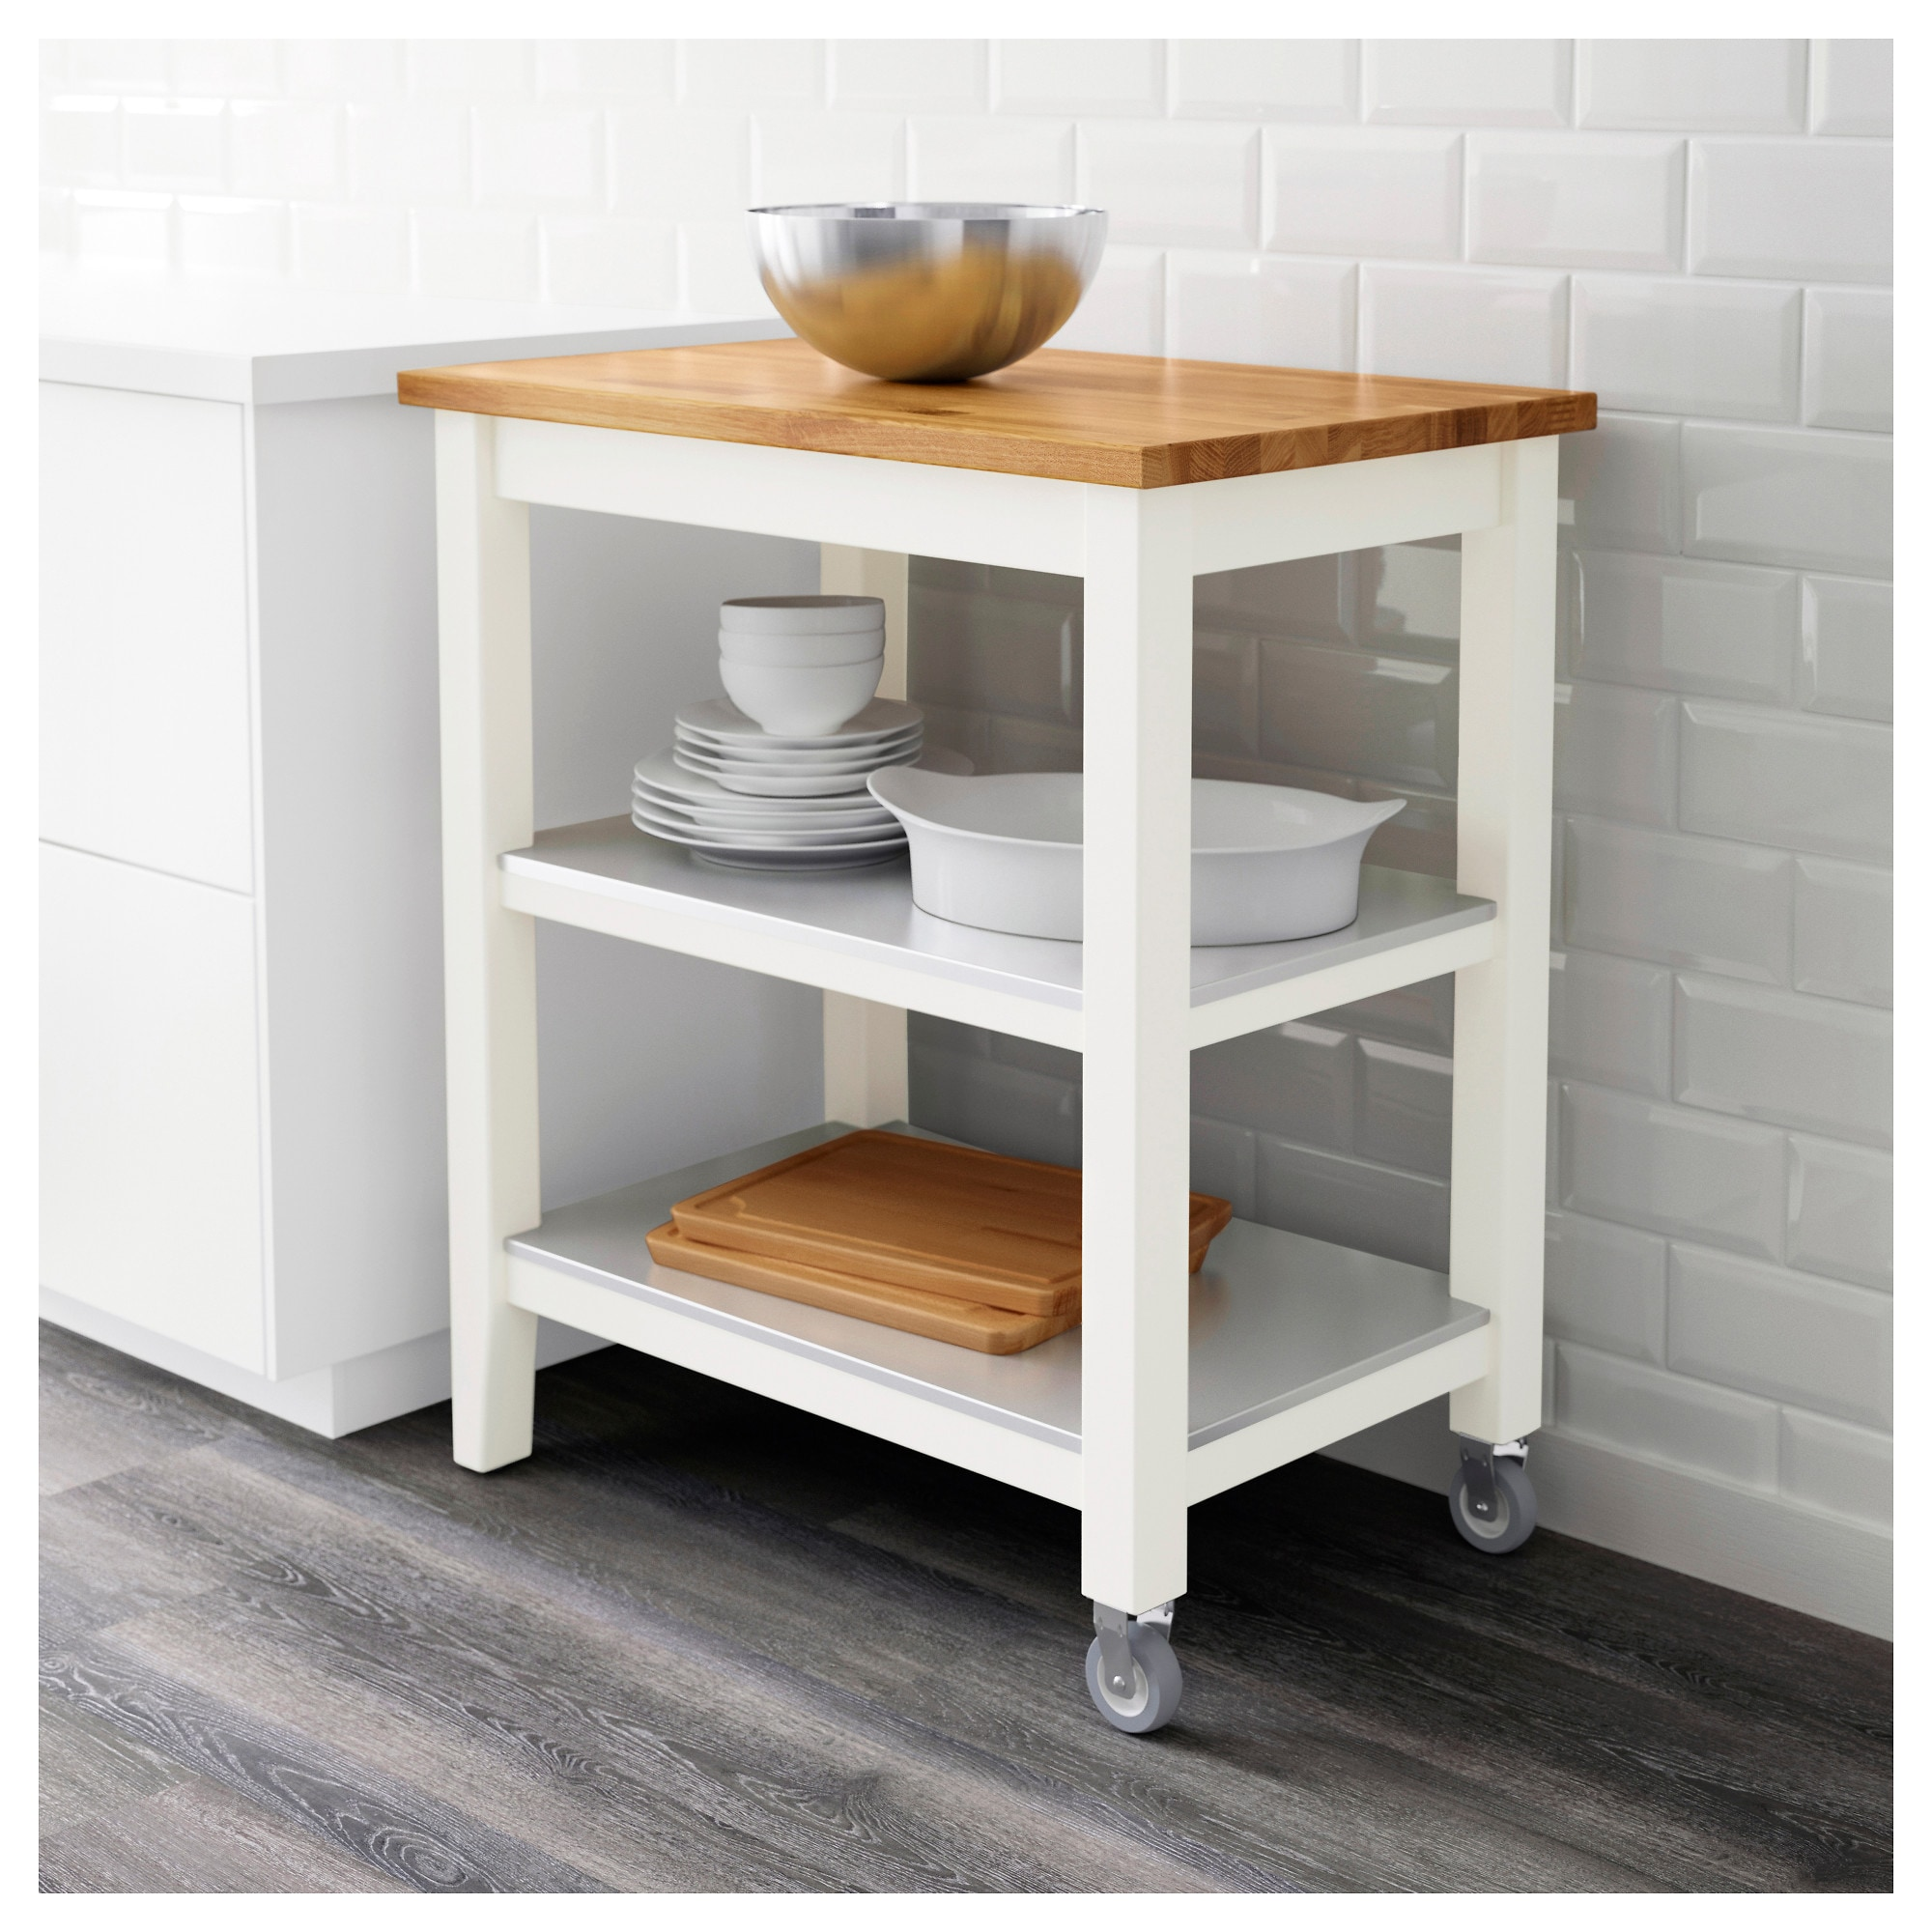 trolley stainless innovative gallery c l steel with r grundtal cart k kitchen shelf ikea